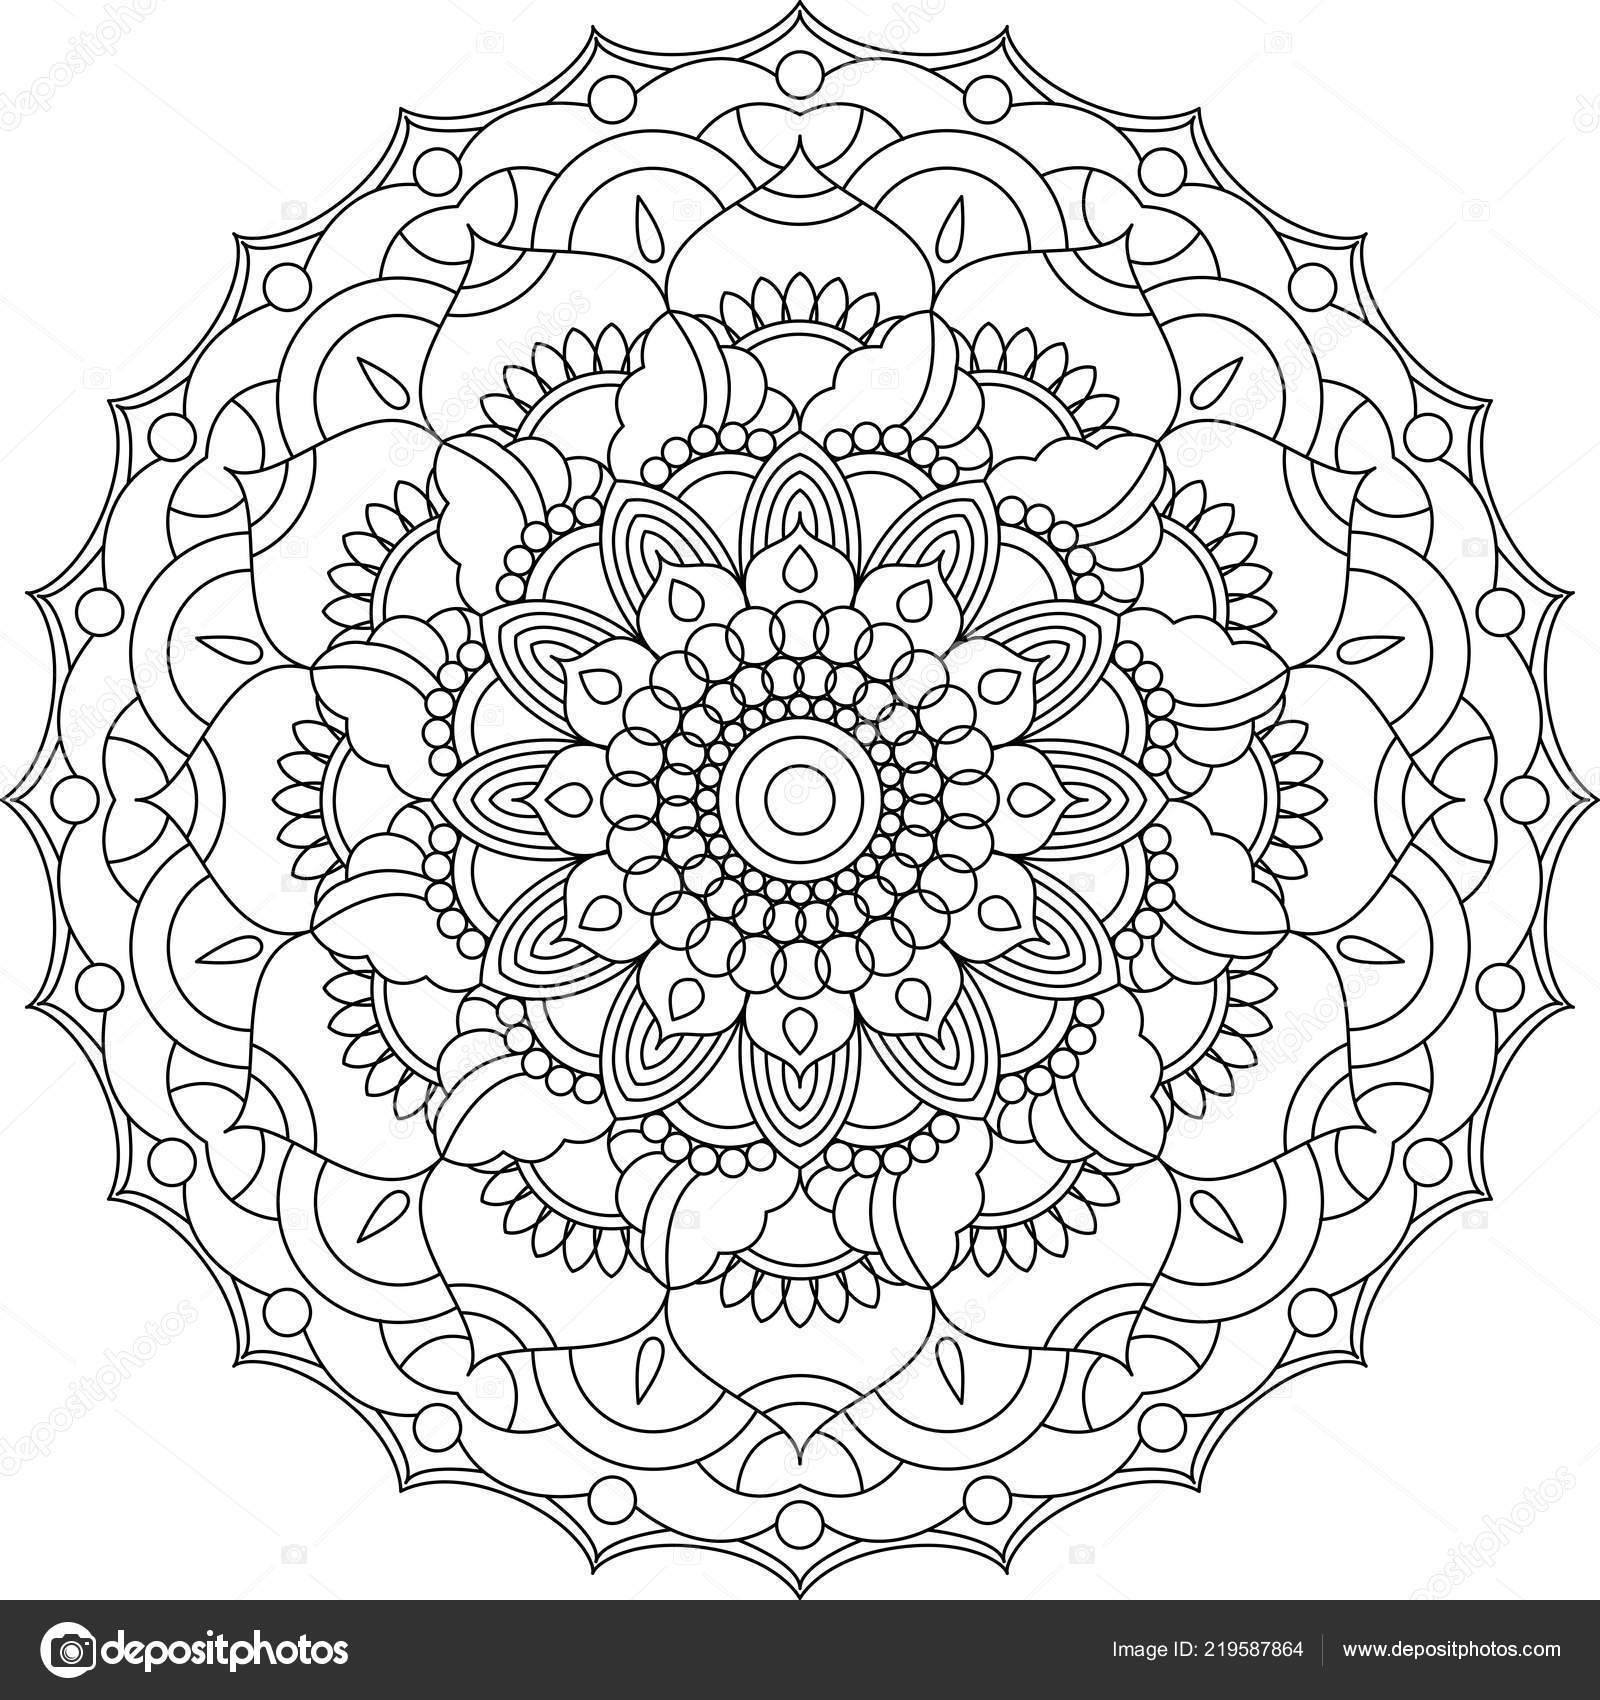 mandala meditation coloring pages meditation coloring pages at getdrawings free download pages meditation mandala coloring